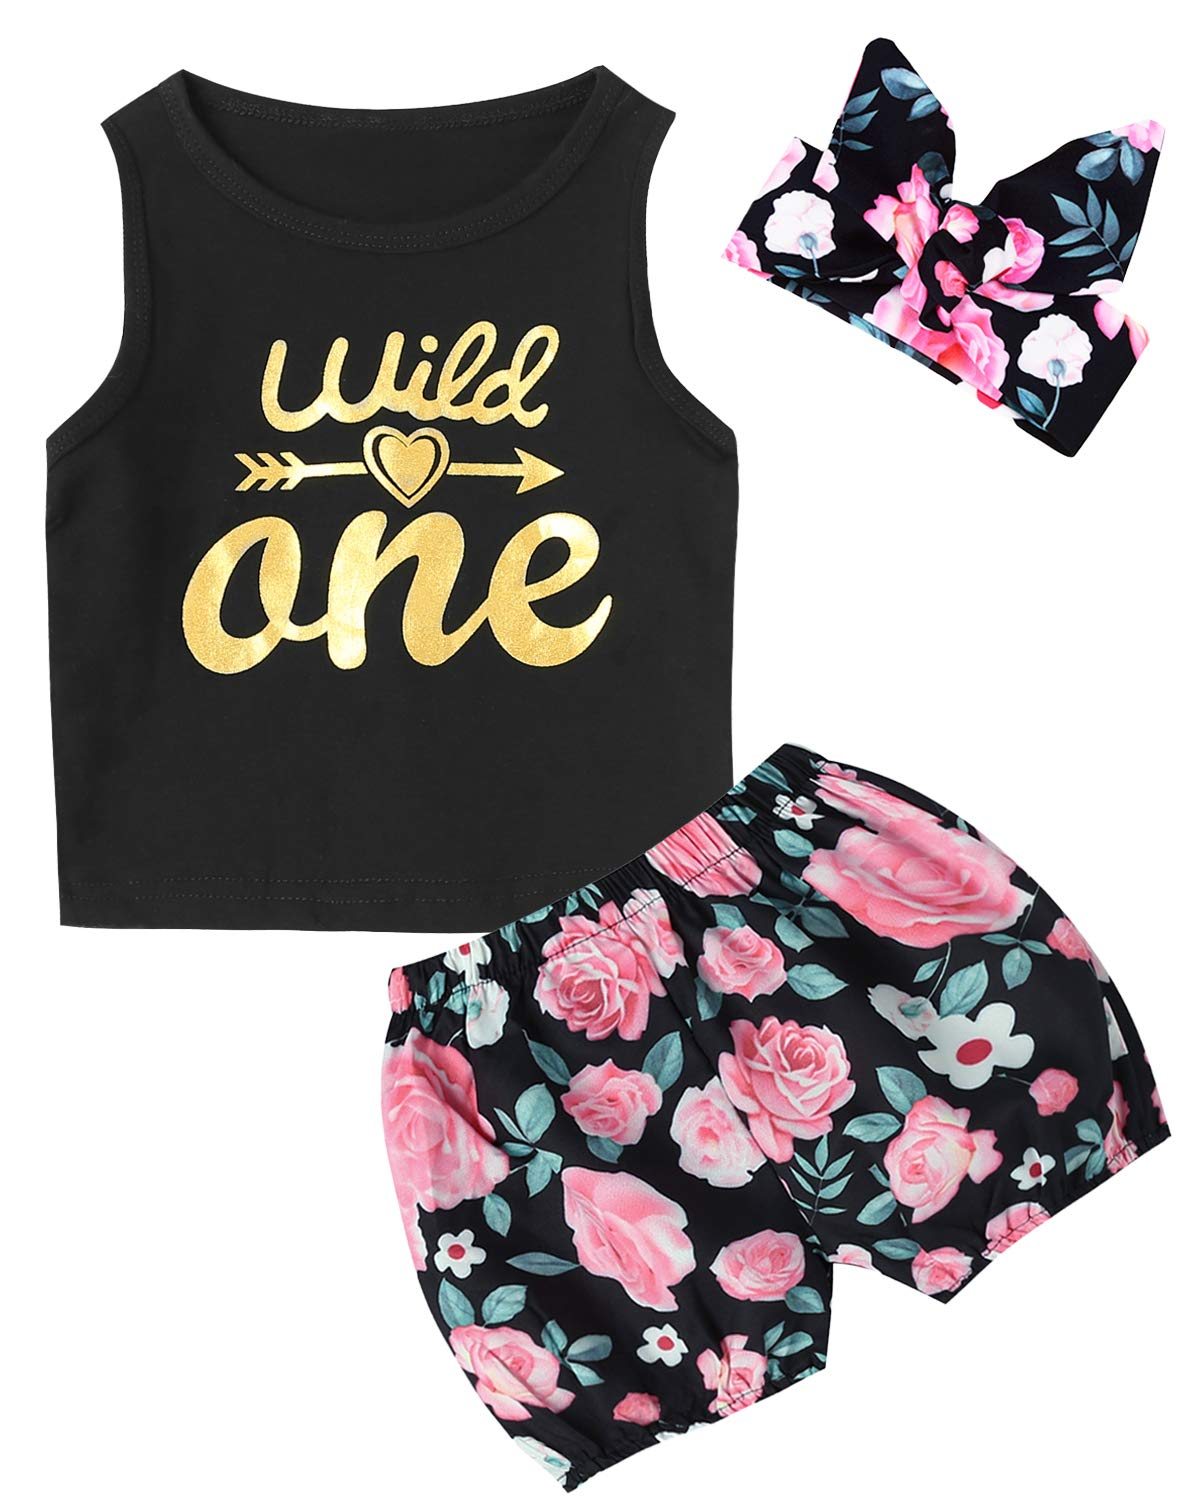 3PCS Baby Girls Wild One Outfit Set Floral Vest Skirt with Headband